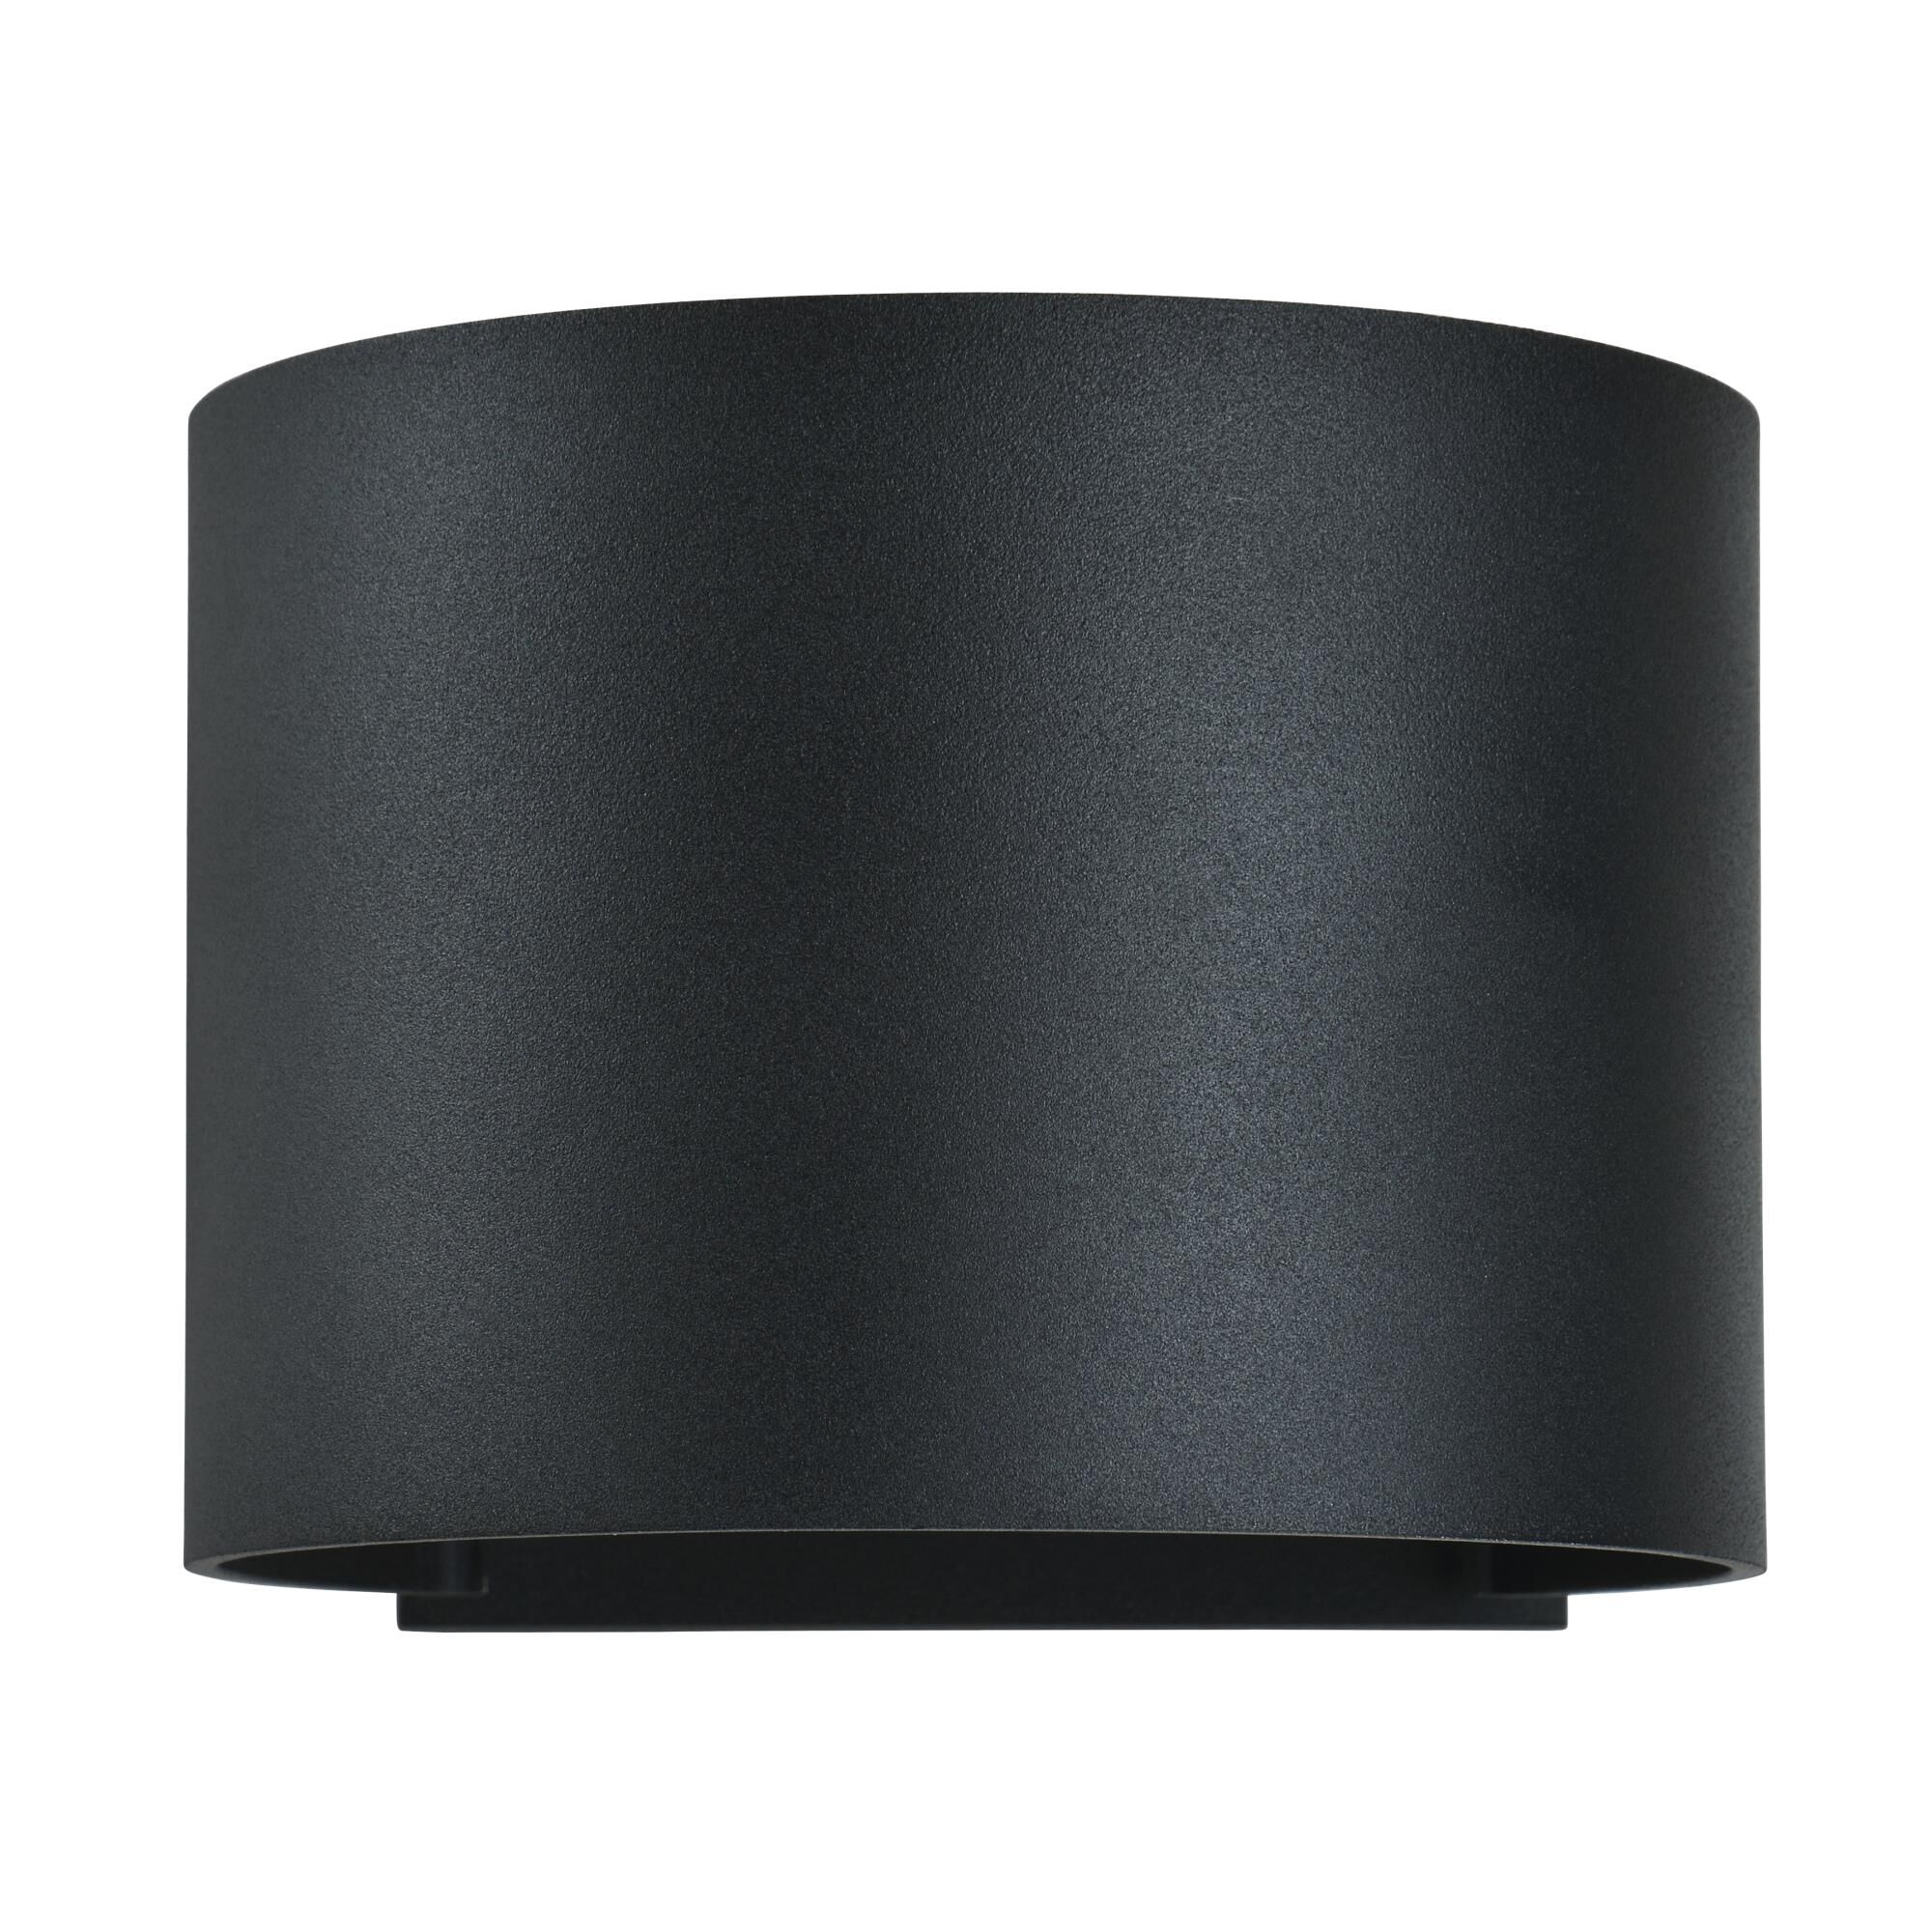 Access Lighting Curve 4 Inch Tall 2 Light LED Outdoor Wall Light Curve 20399LEDMGRND BL Modern Contemporary